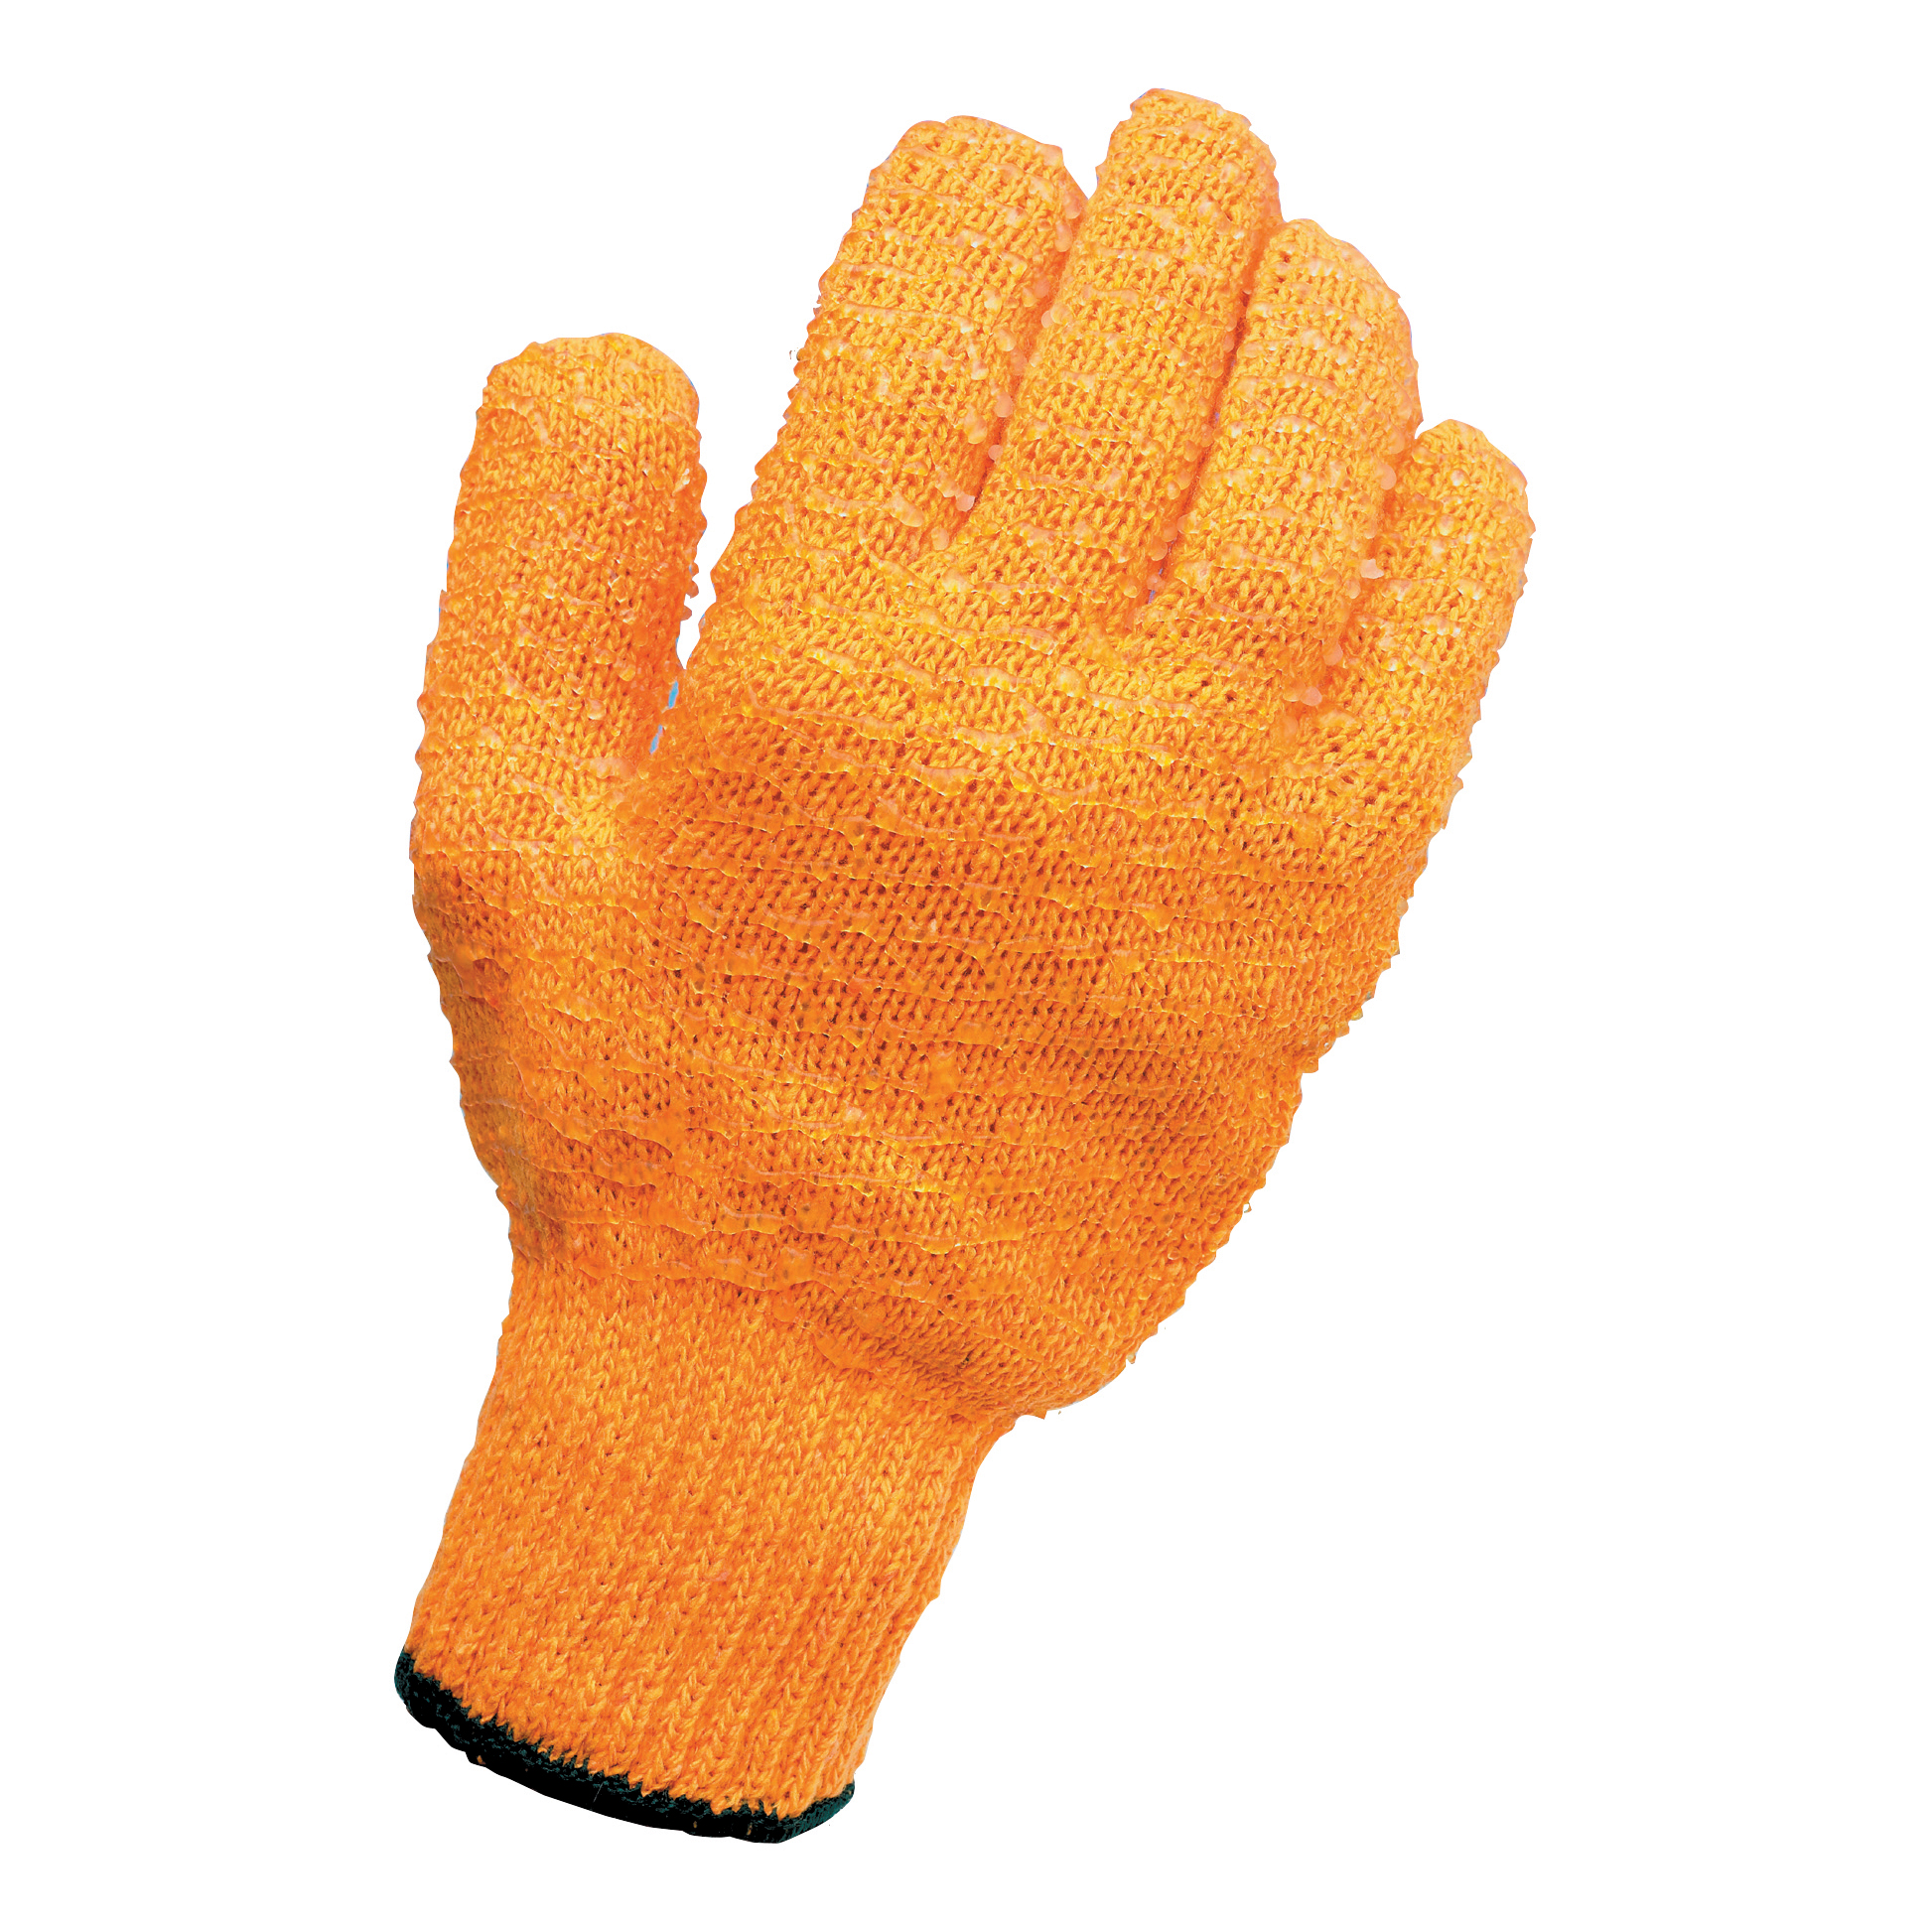 Protective gloves Knitted Grip Gloves Pair High Grip PVC Lattice One Size